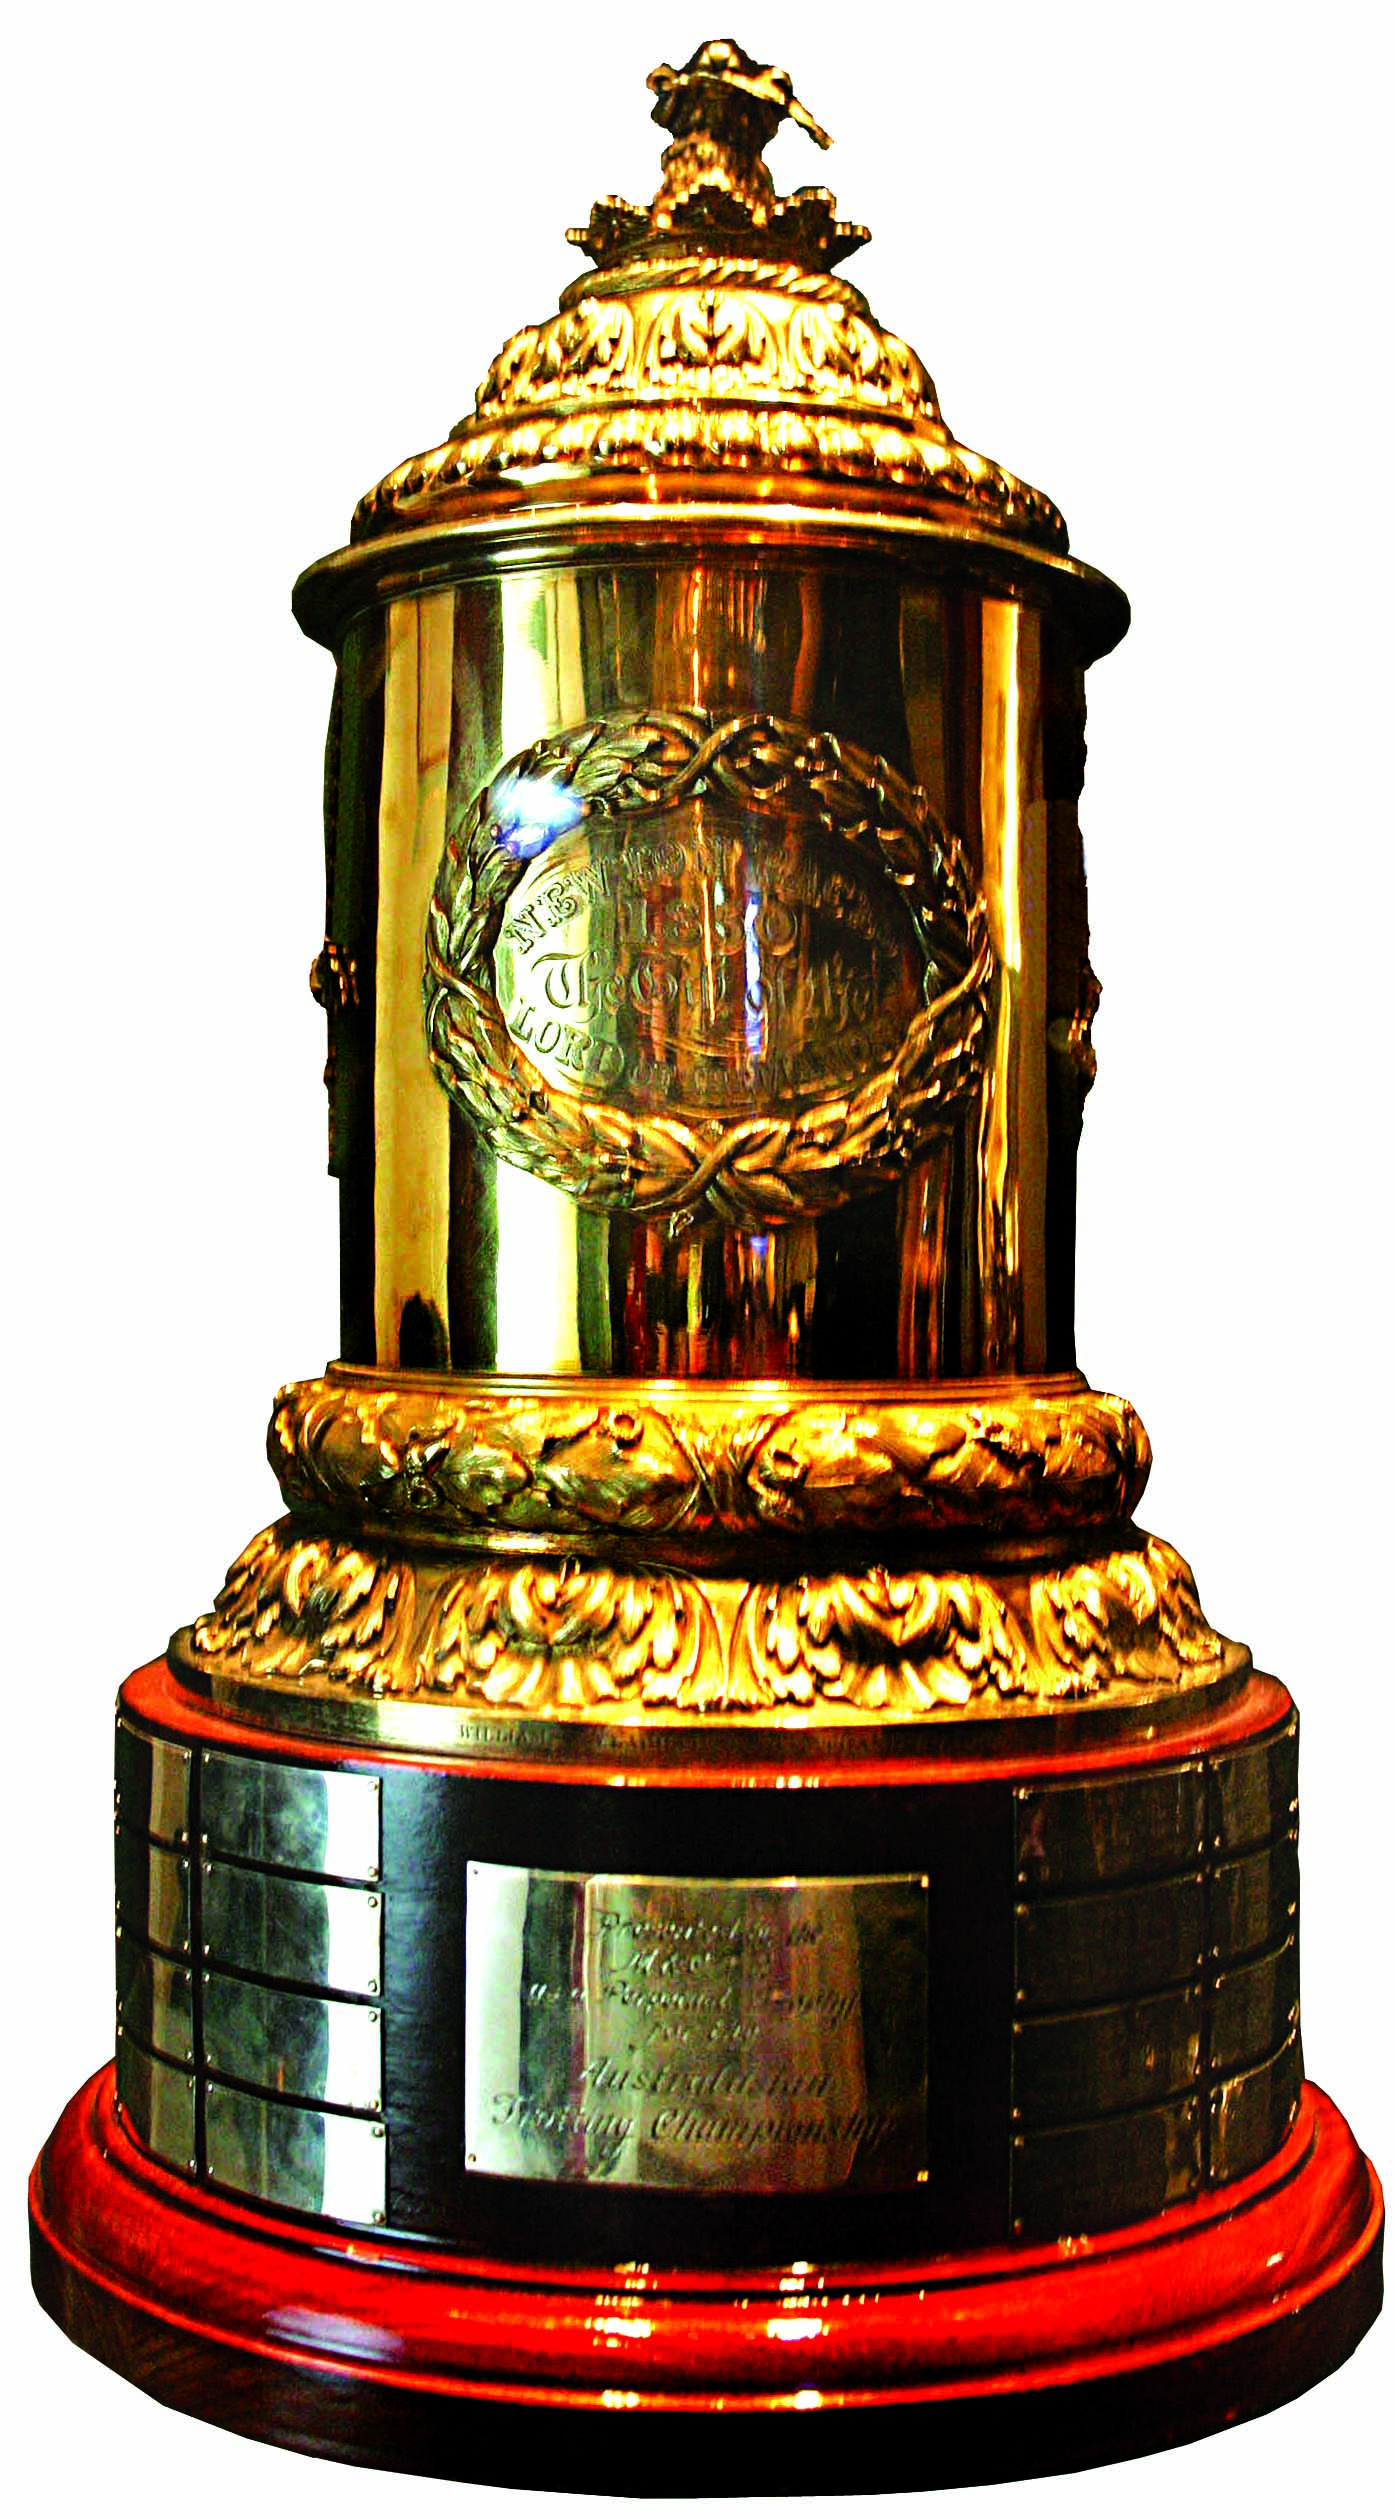 Lord of the Manor Trophy